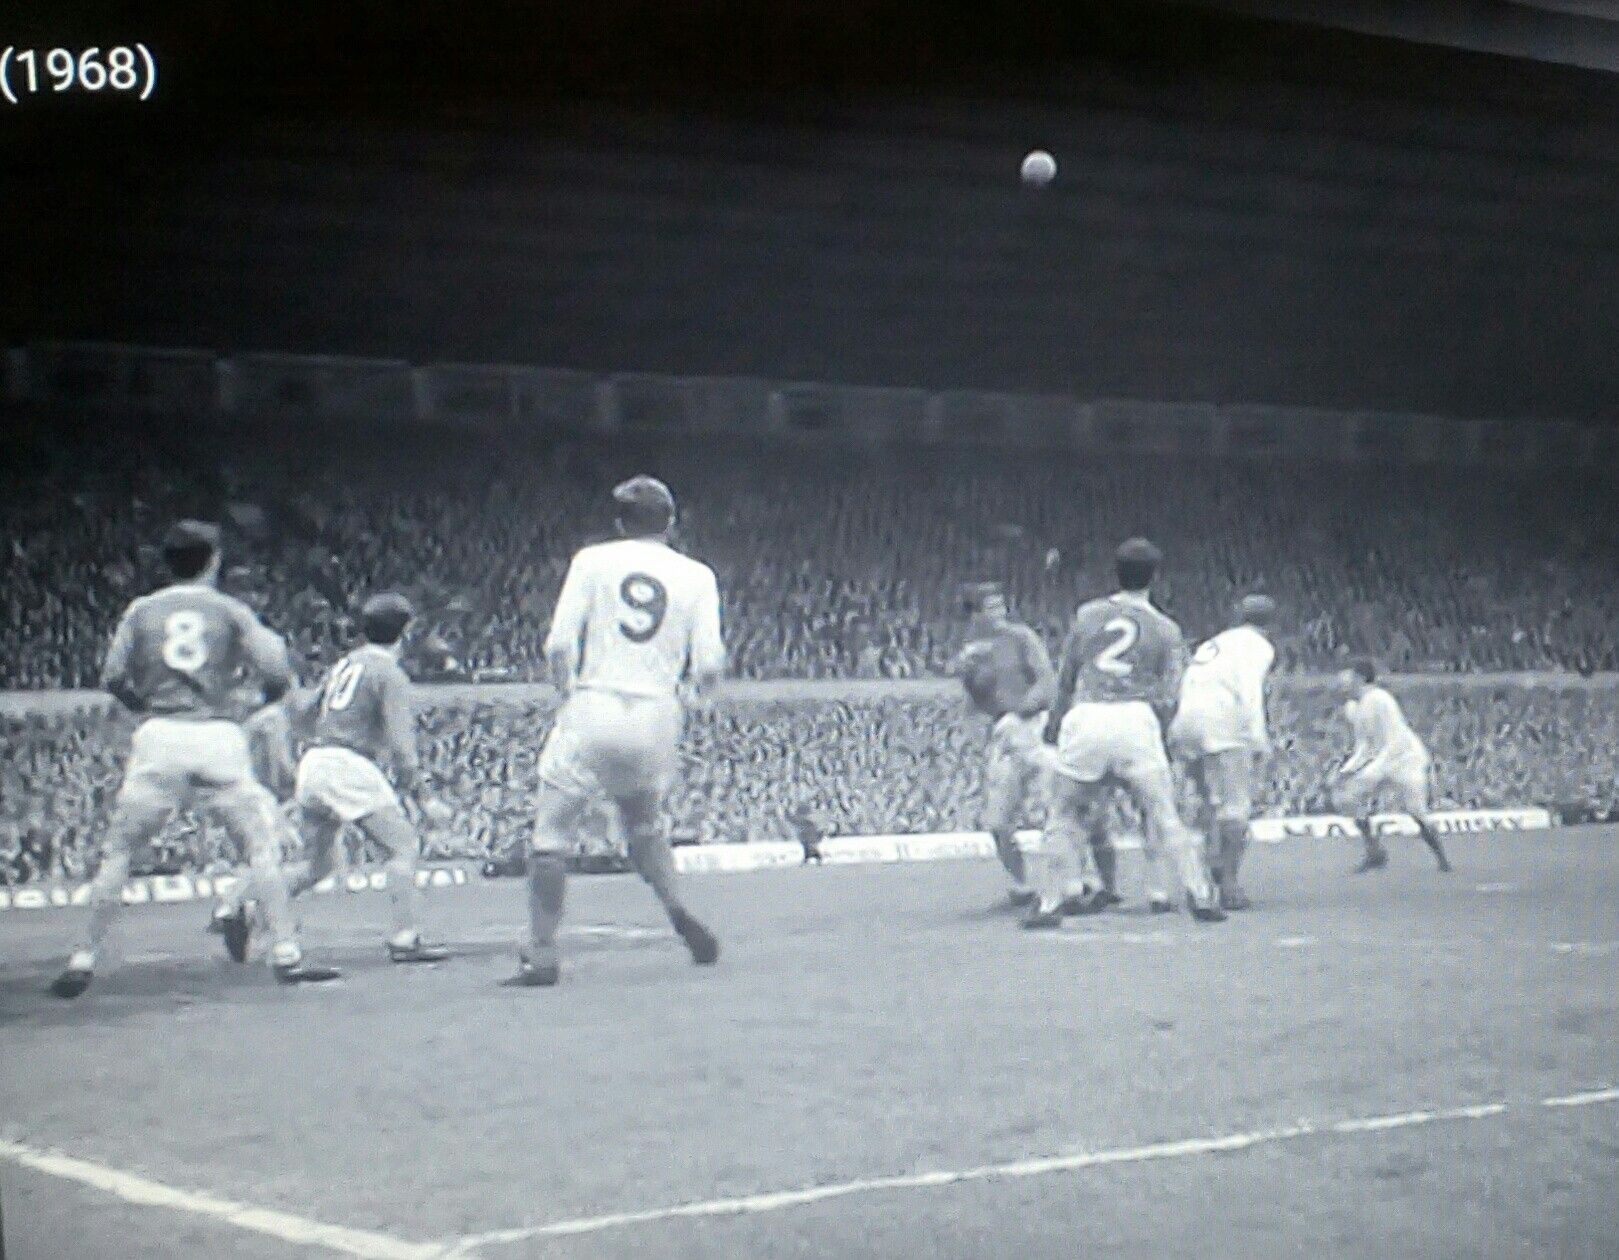 Everton 1 Leeds Utd 0 in April 1968 at Old Trafford. Brian Labone heads clear in the dying seconds in the FA Cup Semi Final.